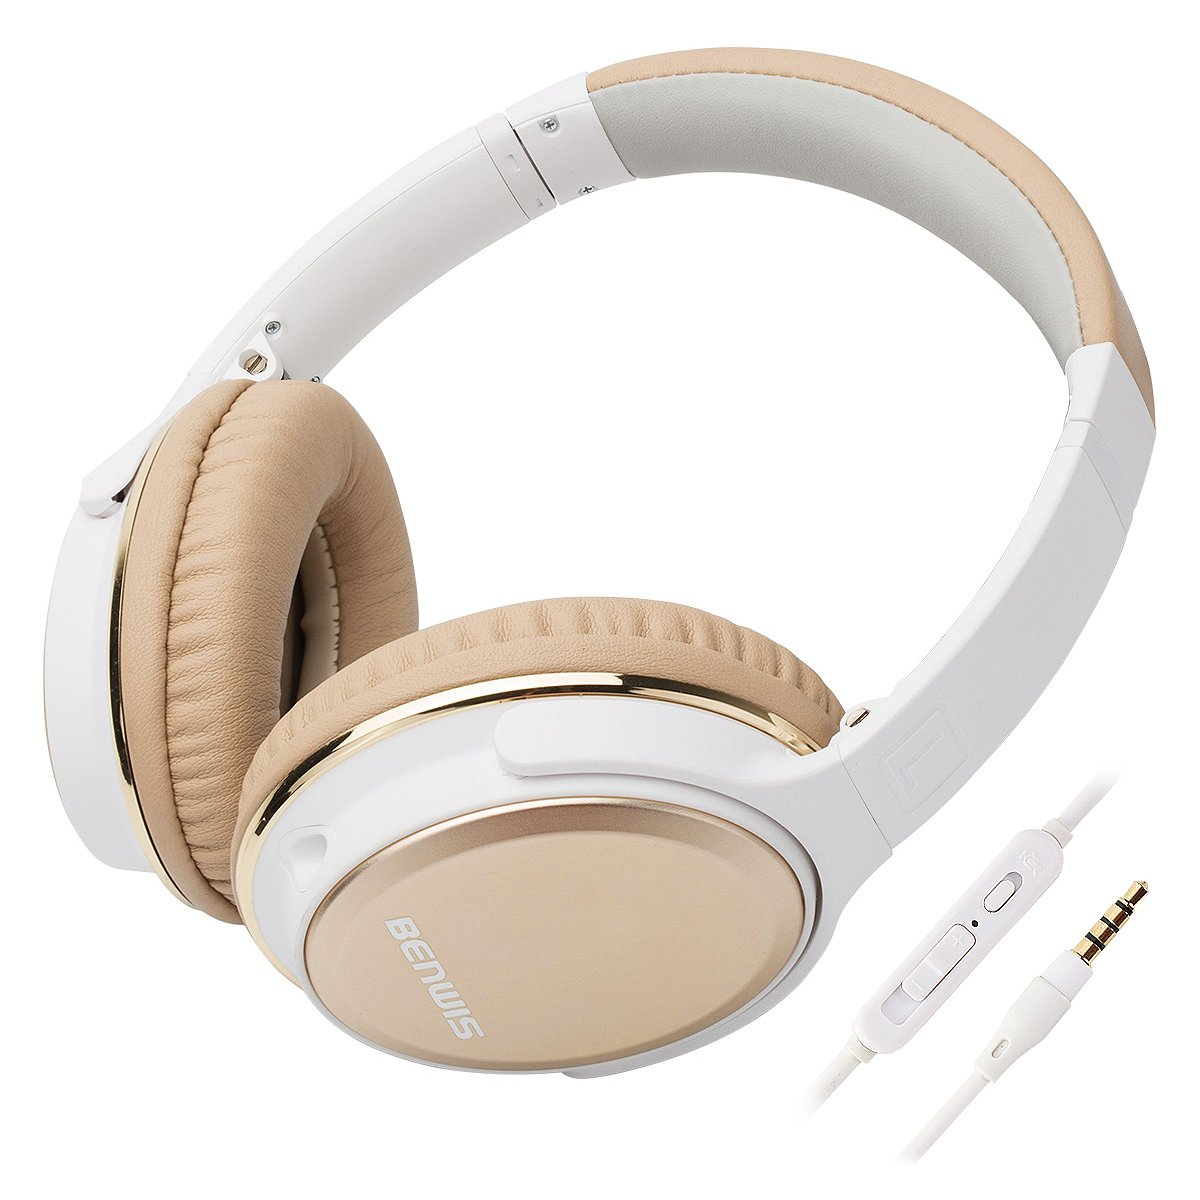 BENWIS Over Ear Headphones with Microphones Lightweight Foldable Hi-Fi Stereo and Noise Cancelling Wired Headsets for Computer Cell Phones MP3, Gold